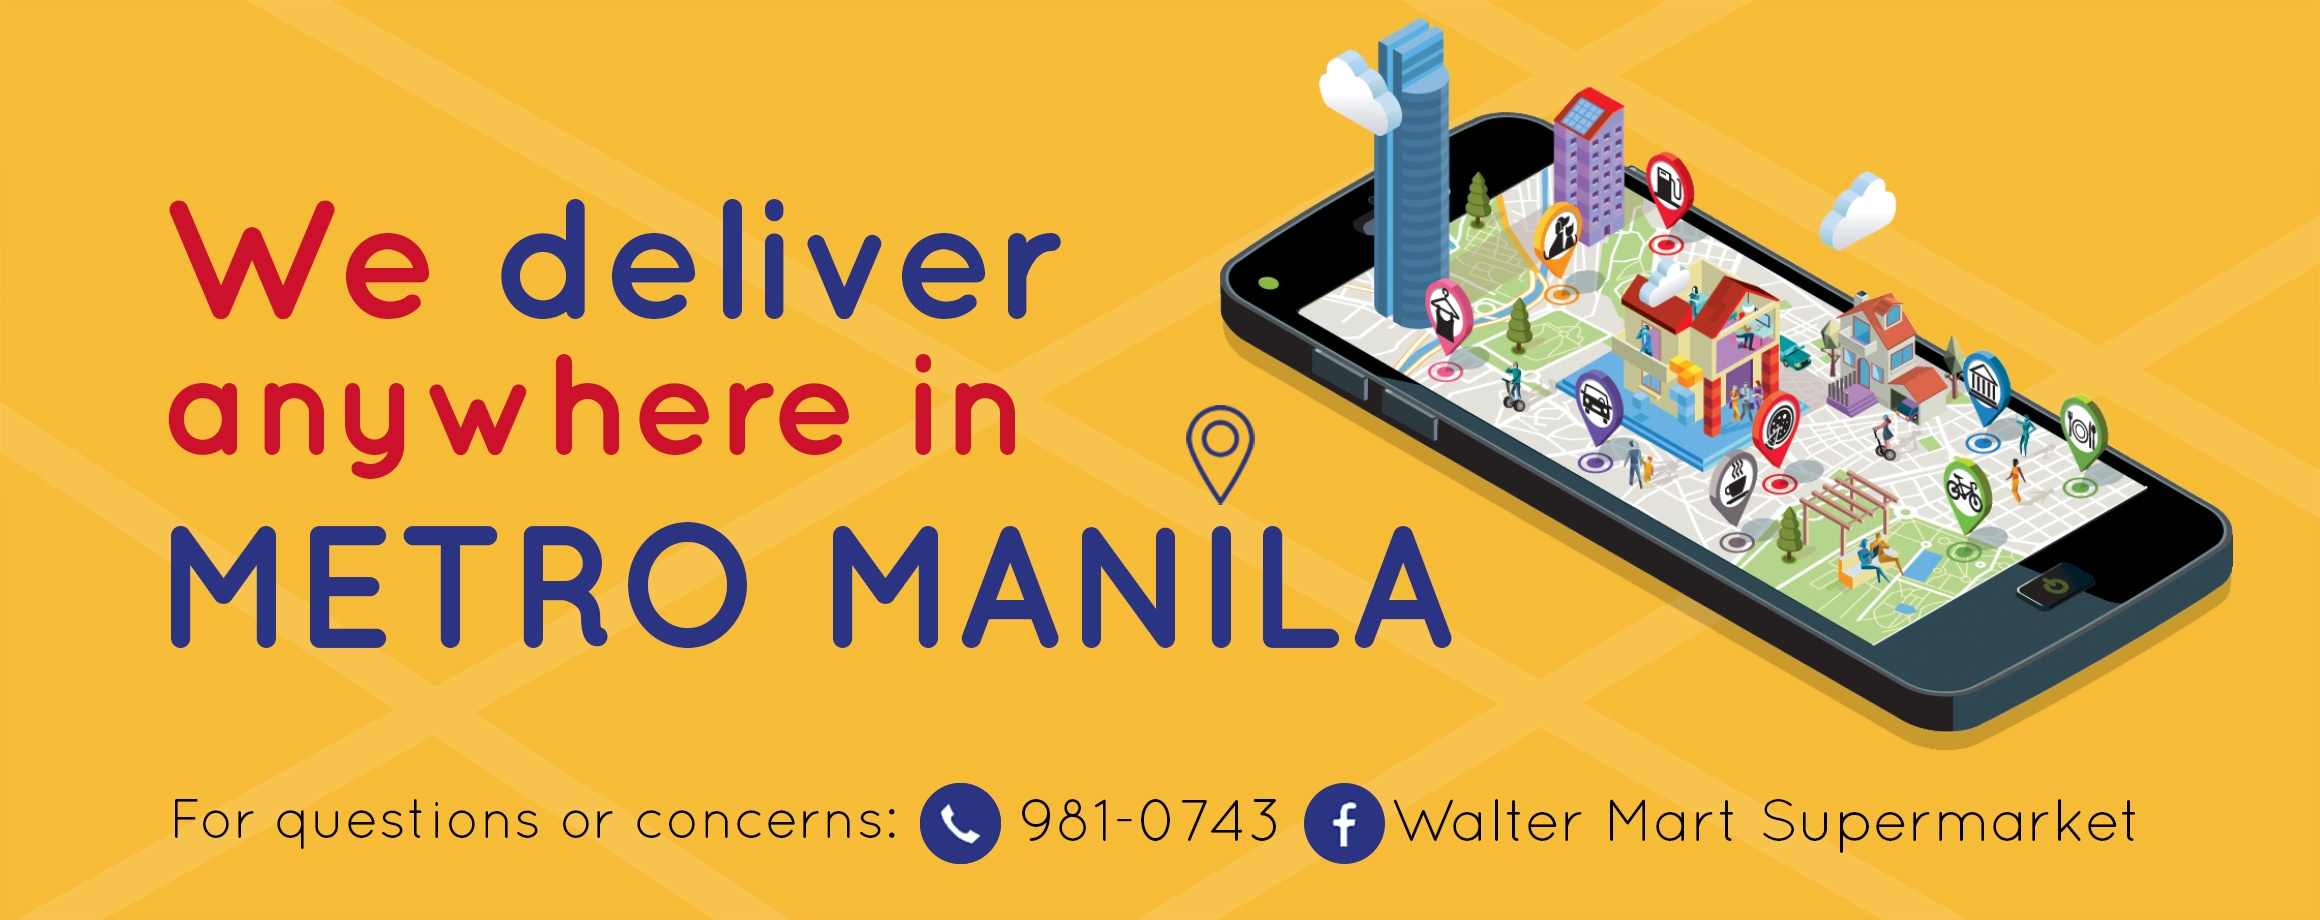 Web-Banner-02_We_Deliver_Anywhere_In_Manila_Final